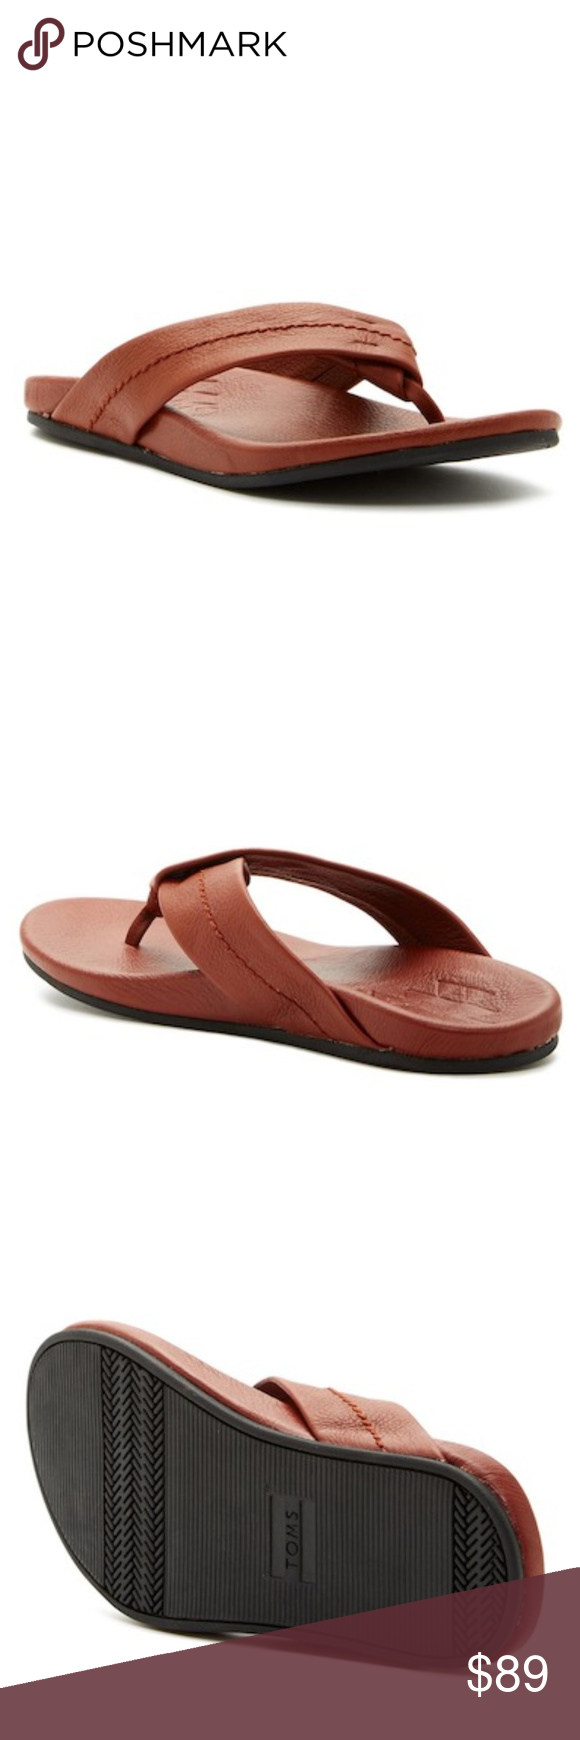 cfc96b108e New TOMS Men's Semana Leather Flip Flop Sandals Details: - New in the box -  Size 11 - Thong toe - Thick leather straps - Padded contoured footbed -  Rubber ...